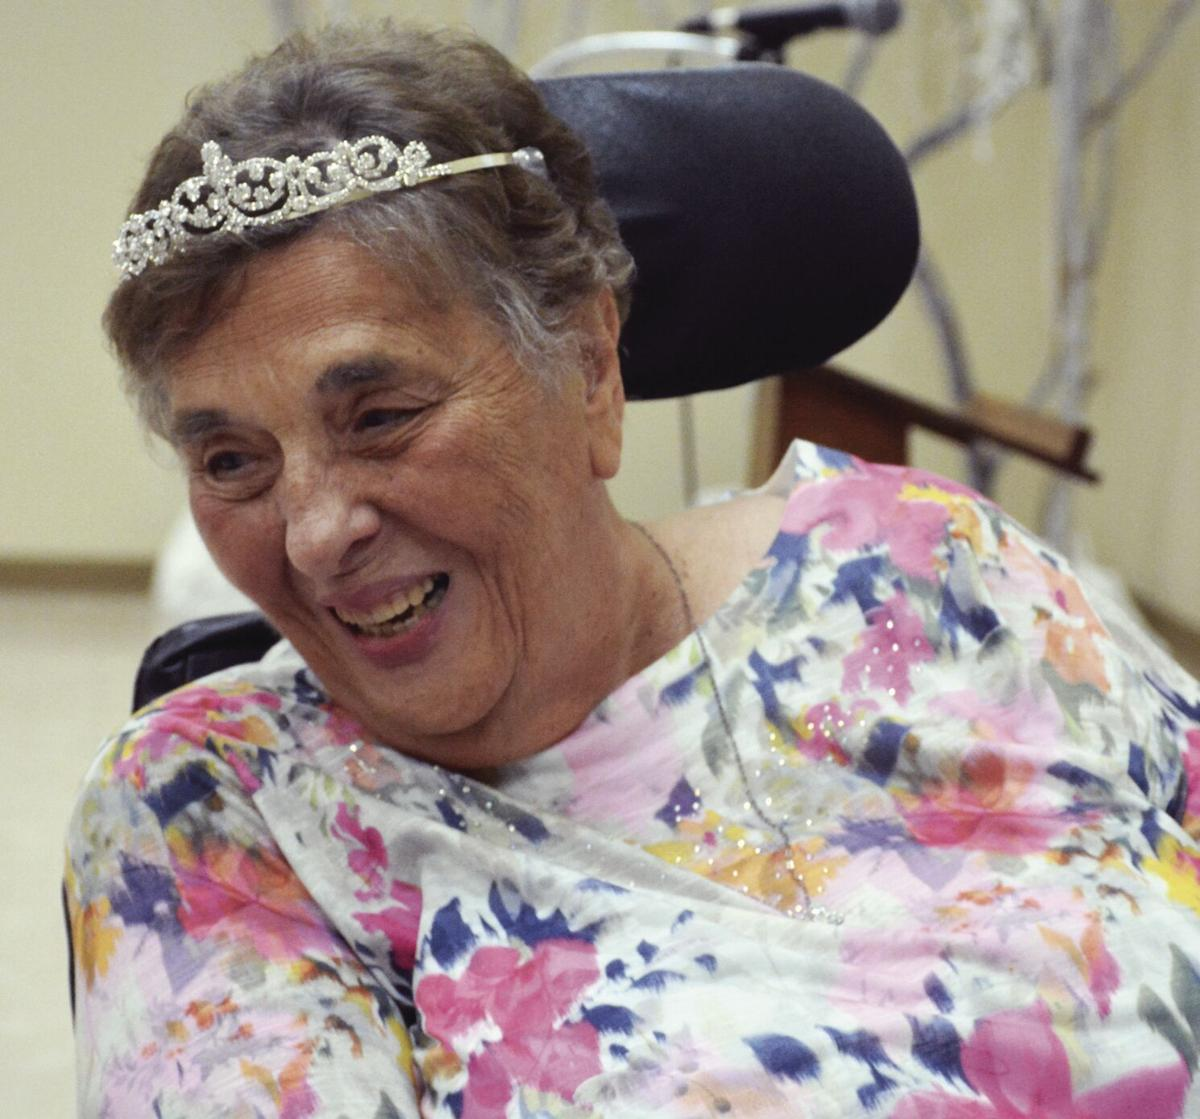 Local nursing home resident named 2nd Runner Up for Ms. Missouri Nursing Home Pageant District 1